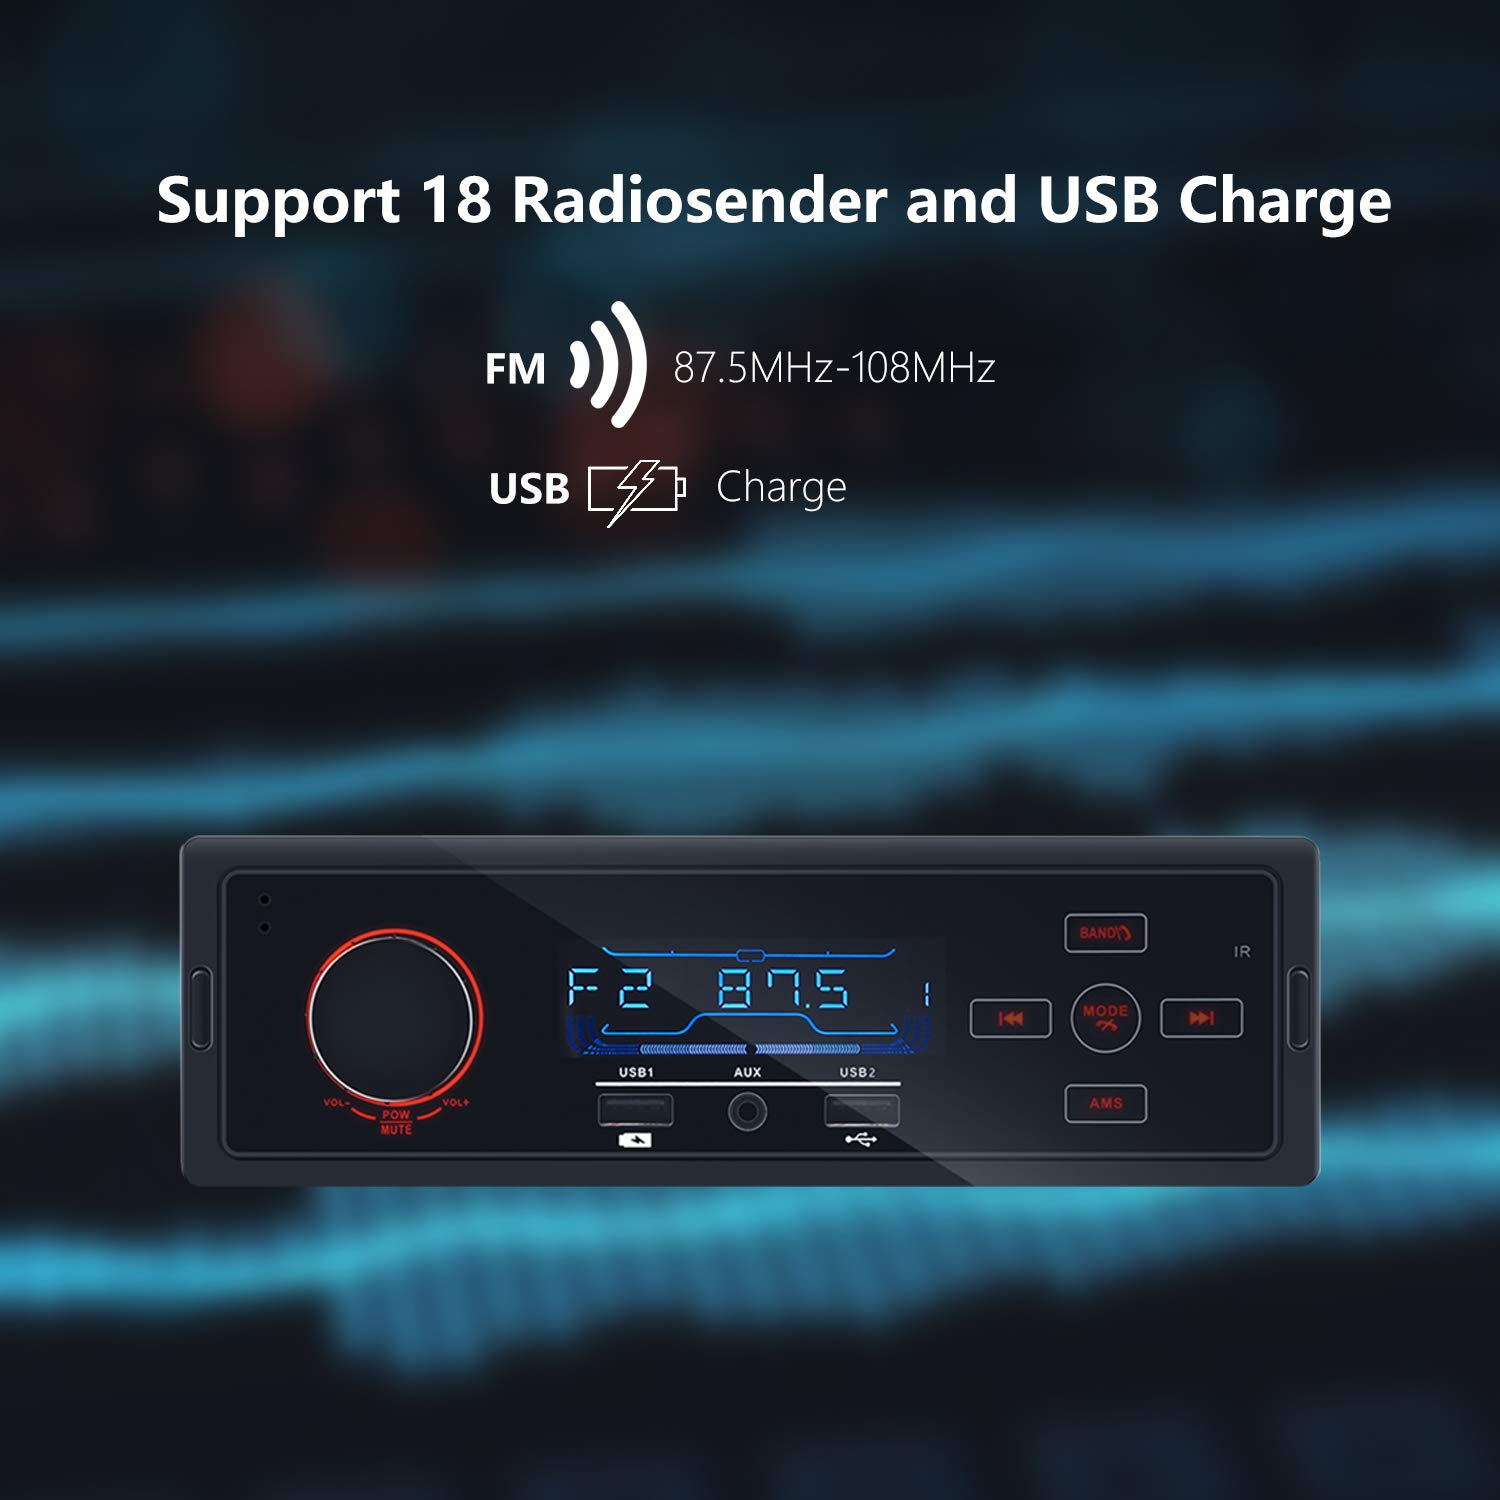 Car Stereo Blueooth 4.0 Auto Radio Receiver MP3 Player in-Dash Autoradio with Touch Screen Handsfree MP3// USB//FM//AUX Single Din Universal with Cellphone Charging Port /& Wireless Remote Control